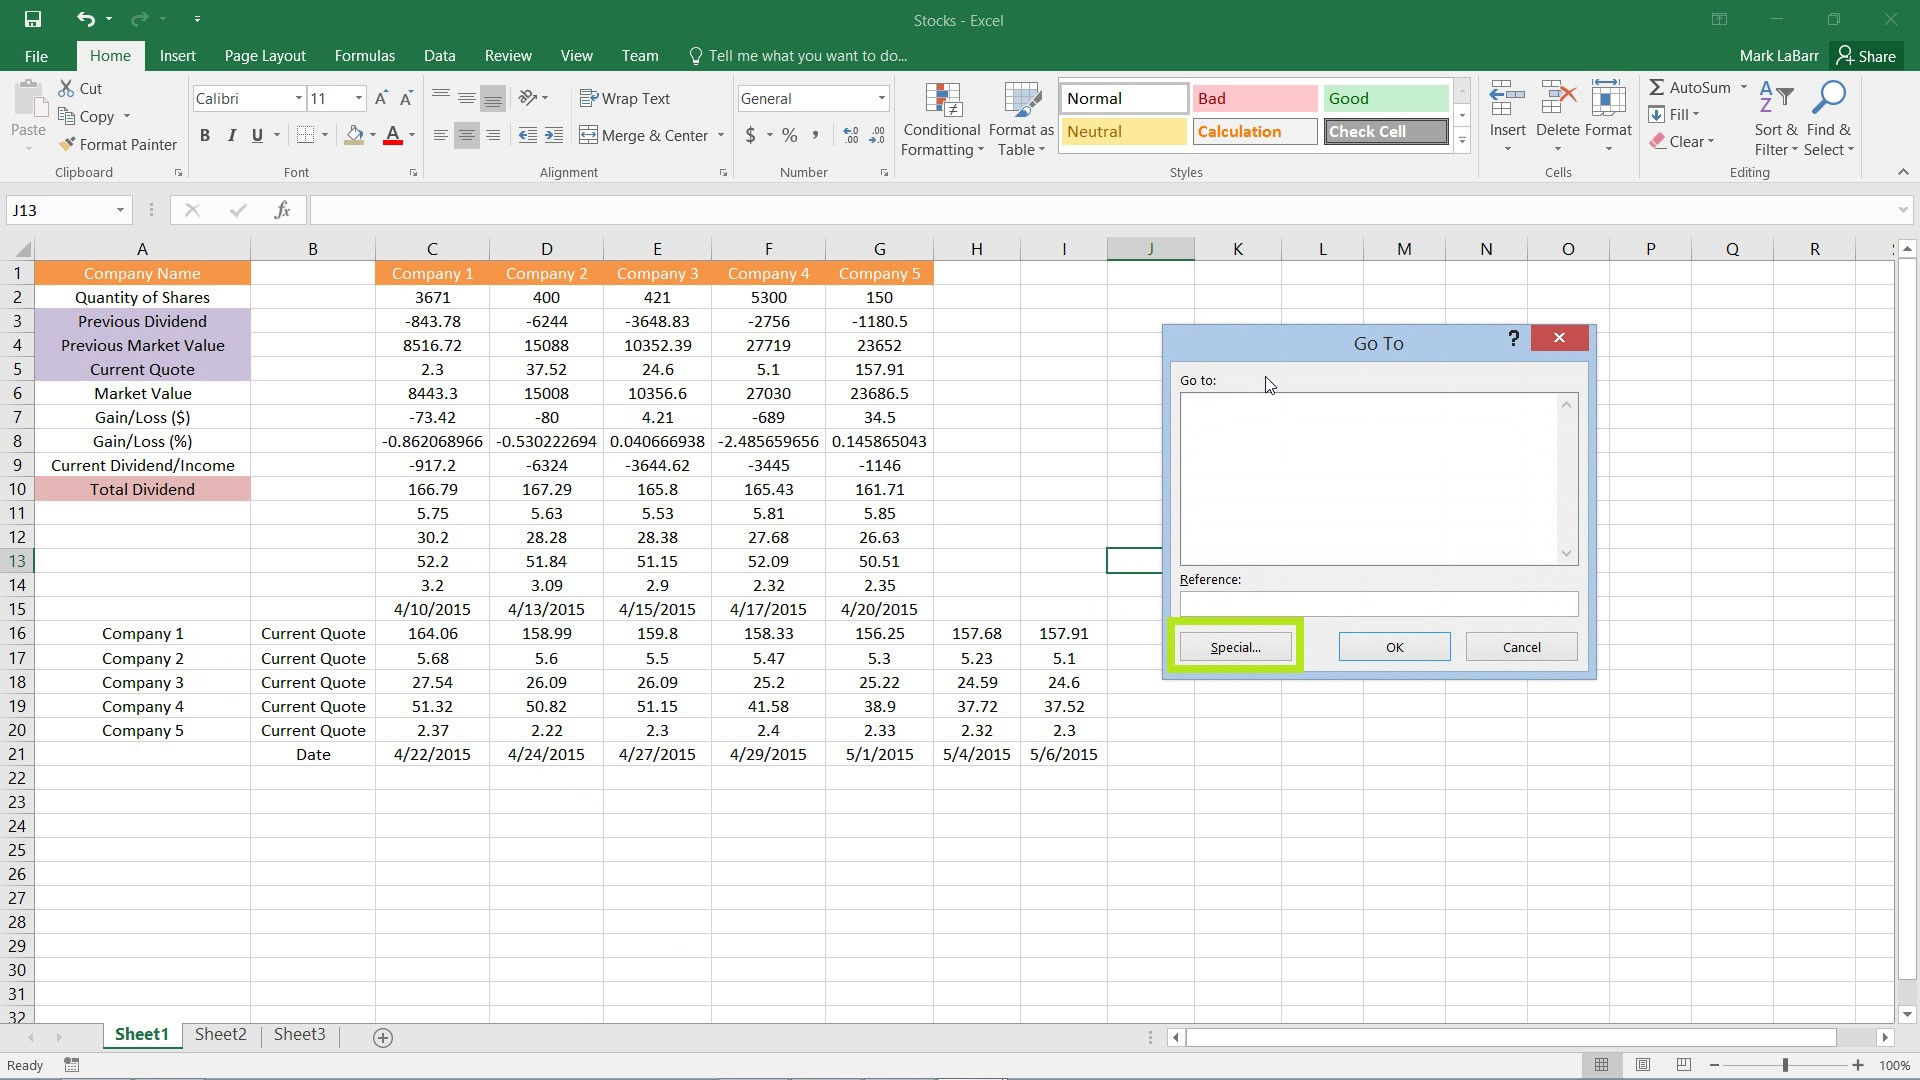 How To Remove Empty Or Blank Cells In Excel